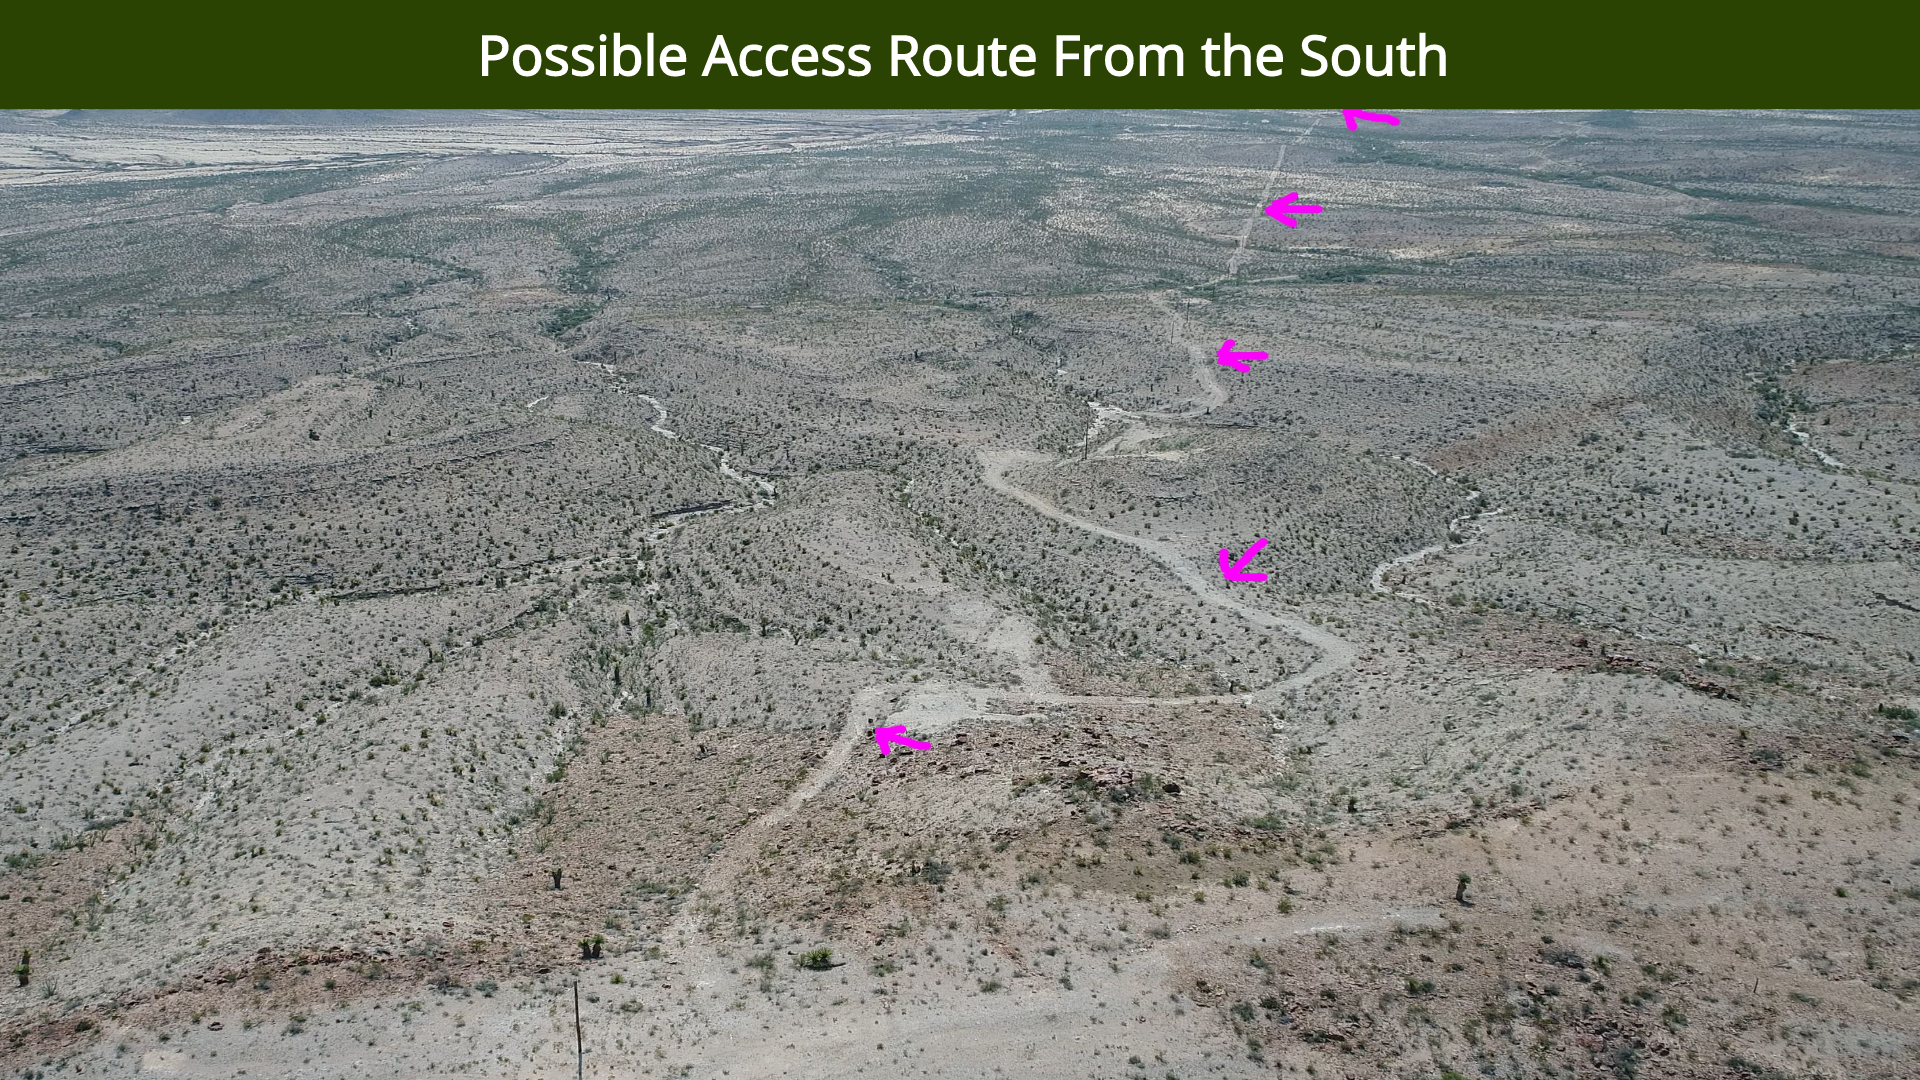 Possible Access Route From the South